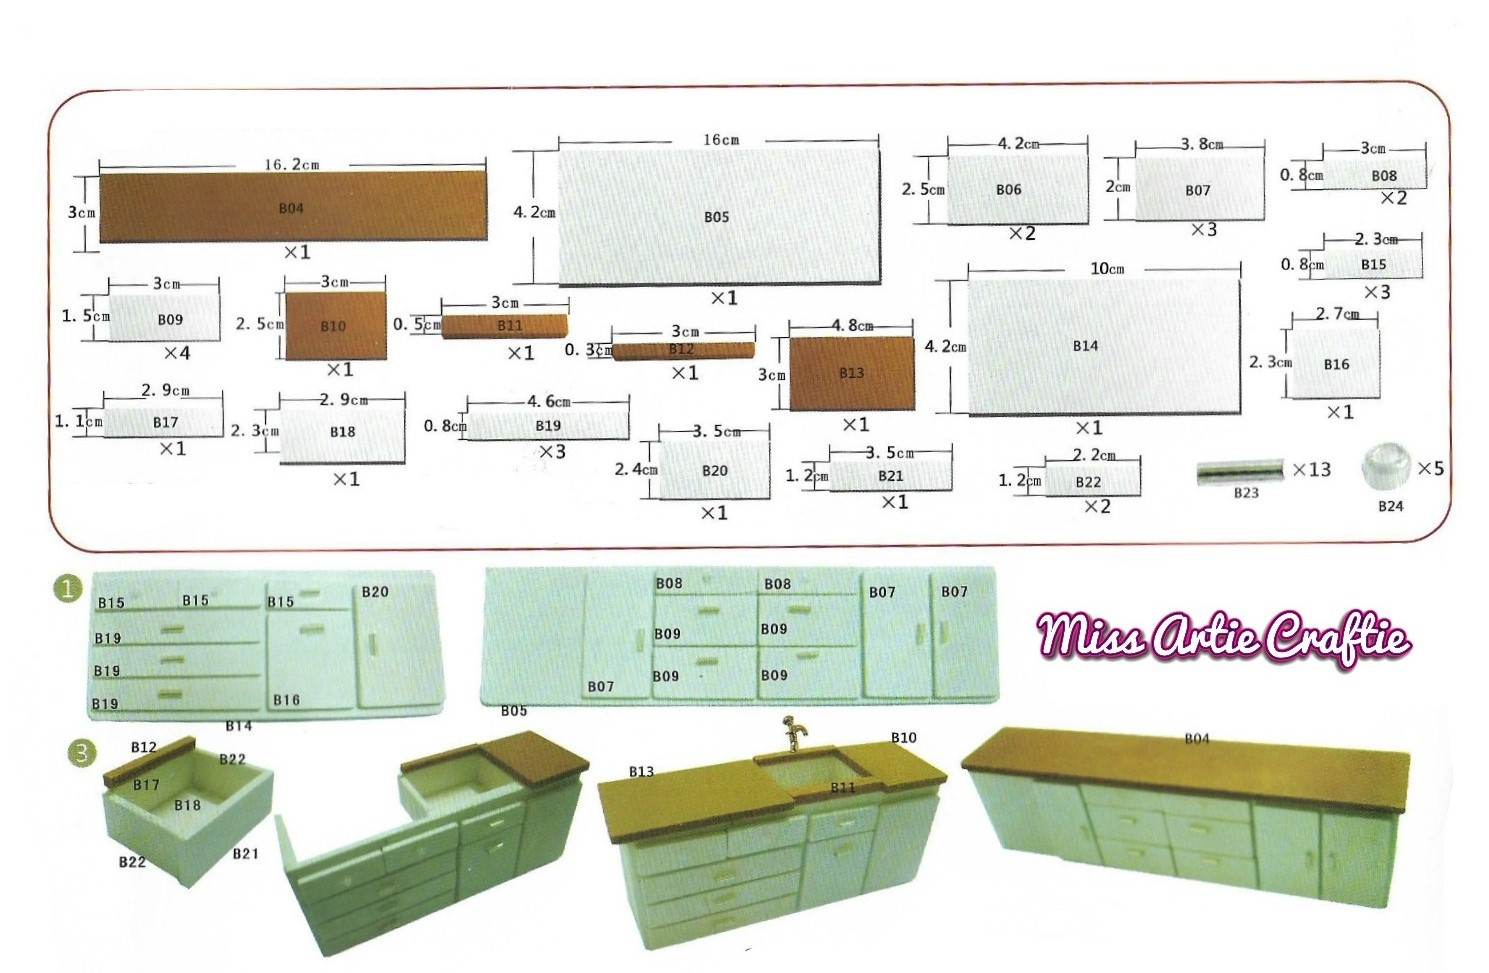 miniature dollhouse kitchen cabinets template and measurements - Dollhouse Kitchen